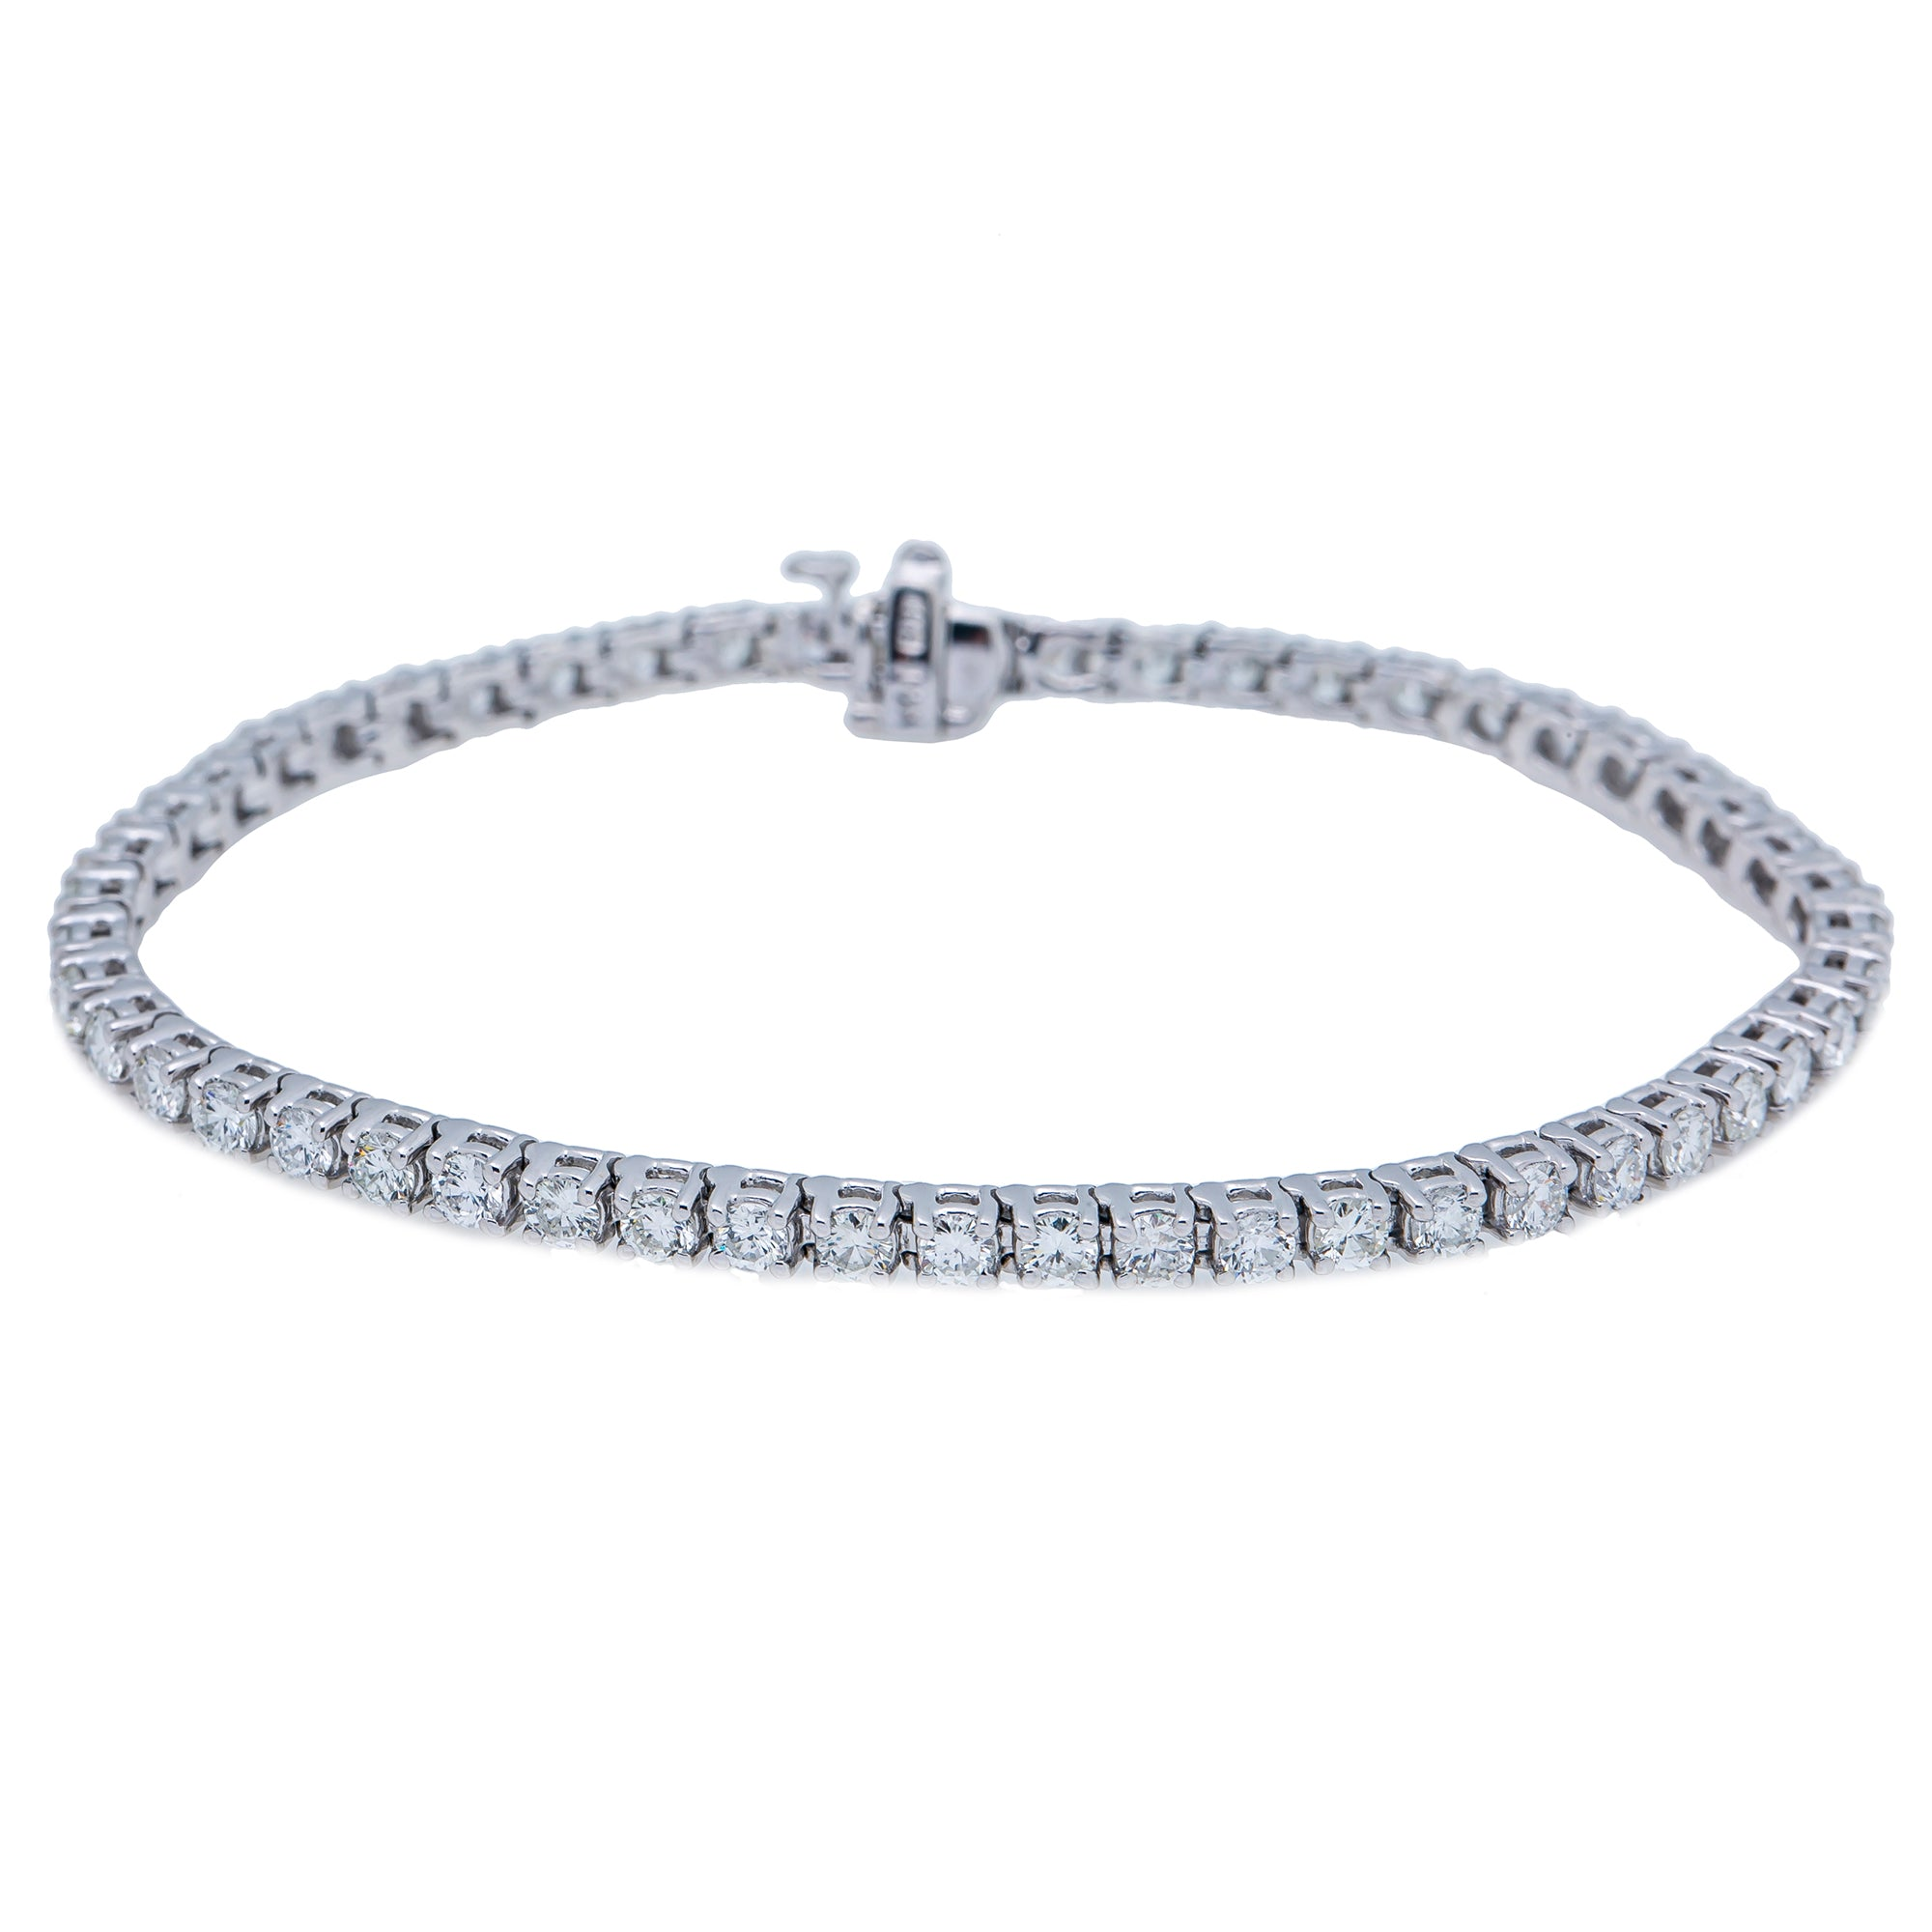 14K WHITE GOLD UNISEX BRACELET WITH 4.25 CT  DIAMONDS